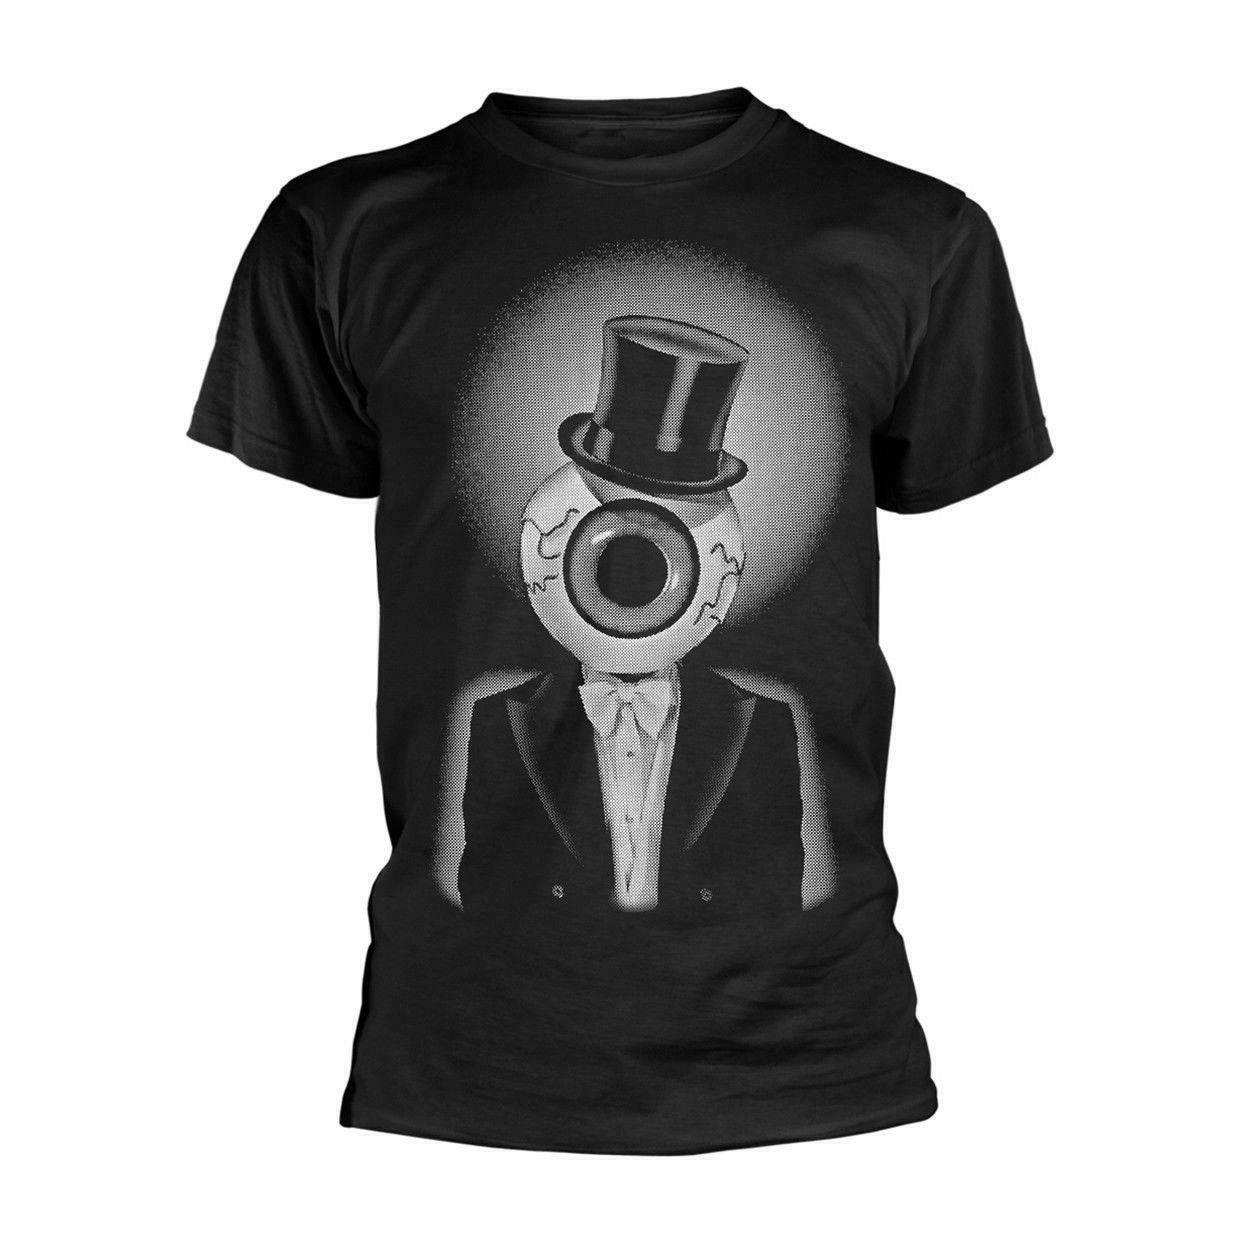 the residents eyeball t shirts cotton size